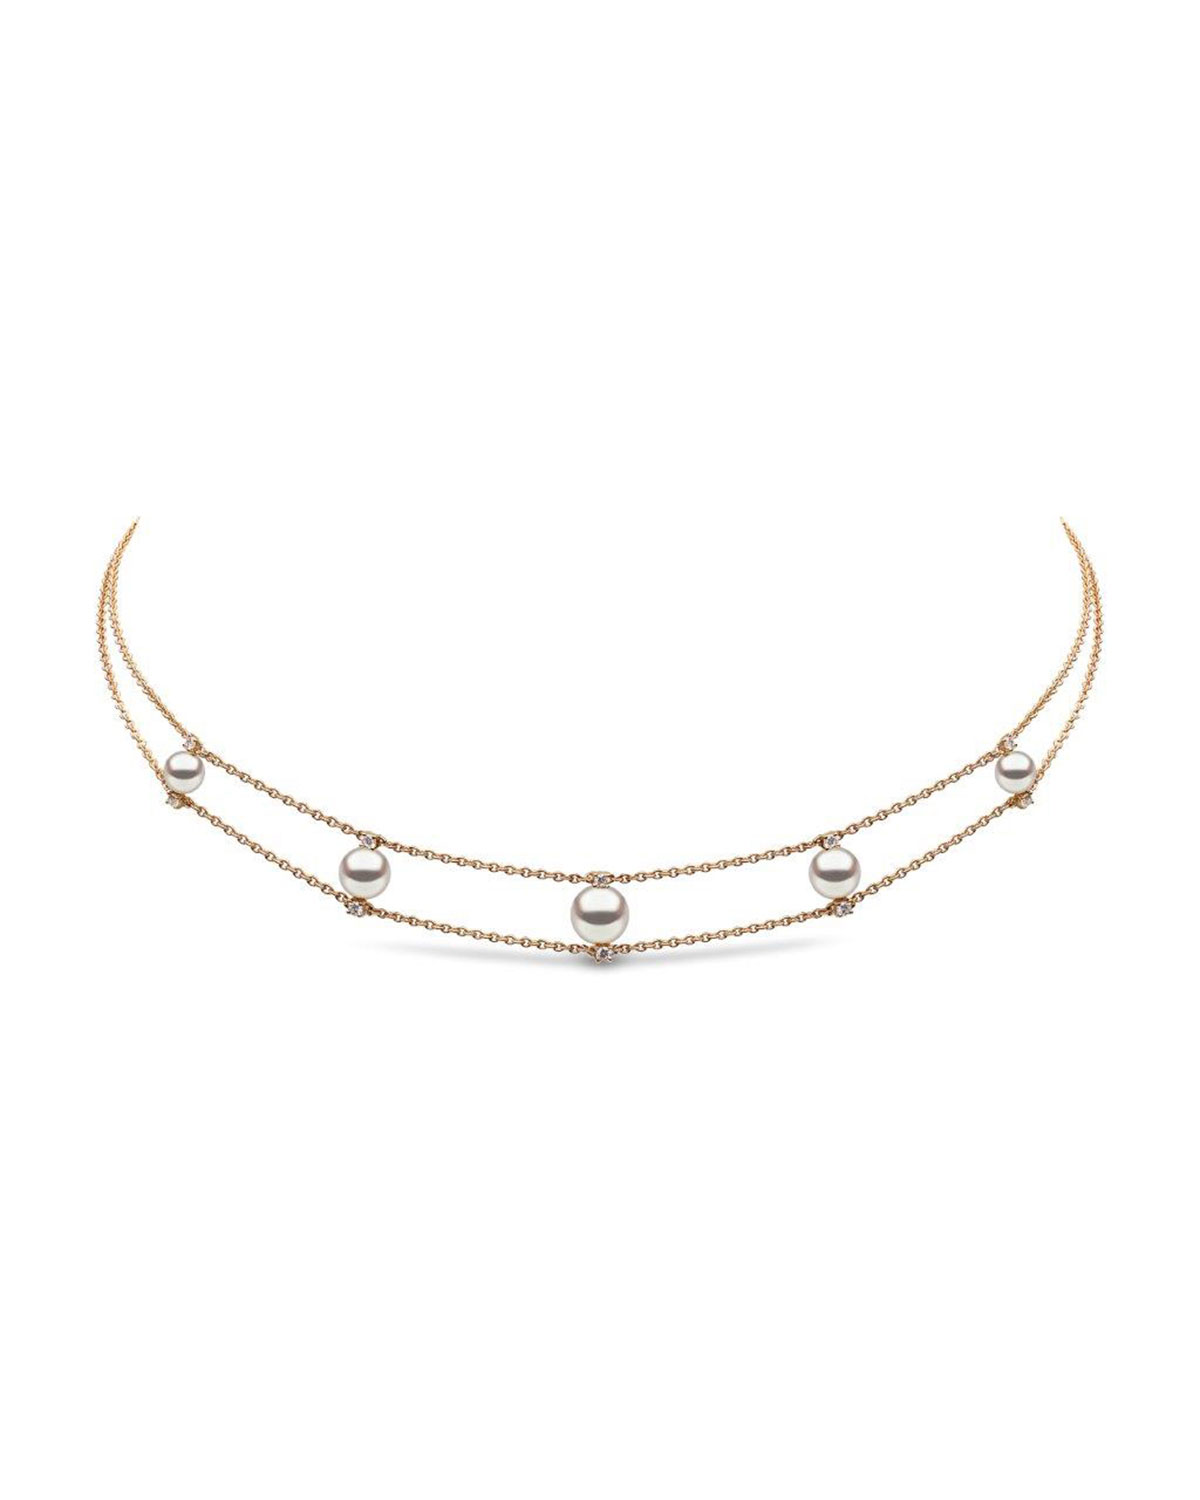 Yoko London 18k Pearl & Diamond 2-Row Necklace